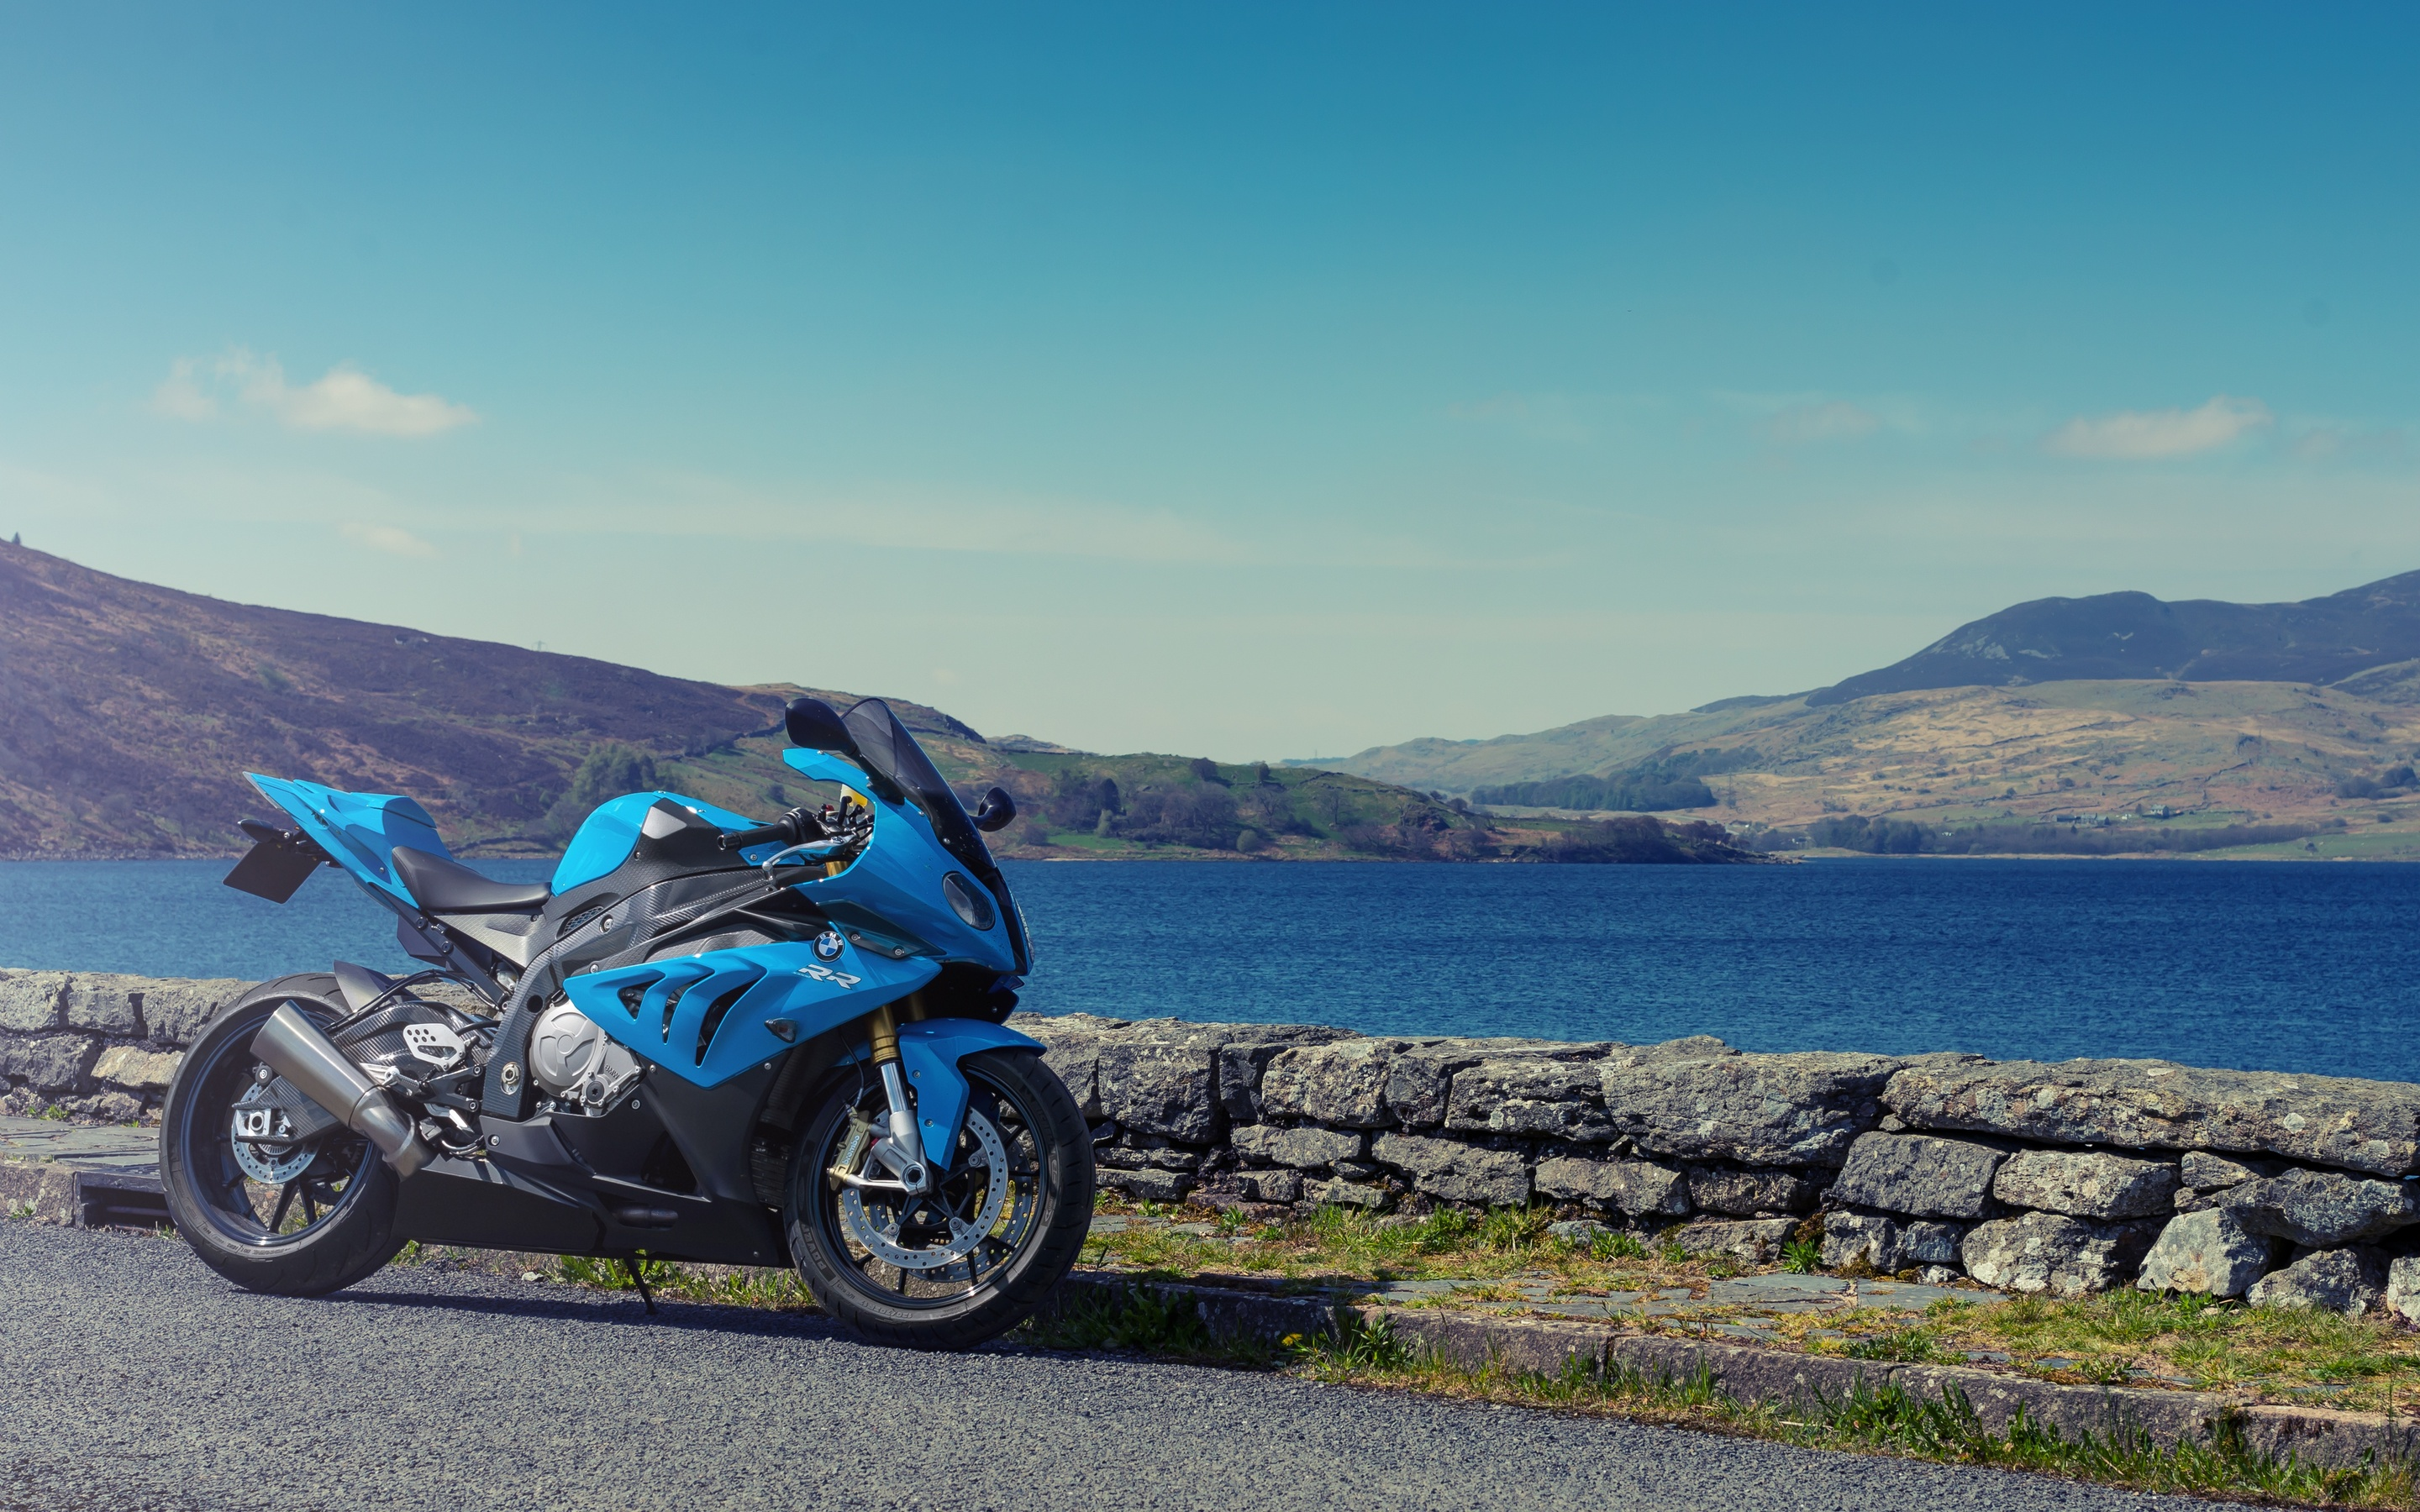 2880x1800 Bmw S1000rr 4k Macbook Pro Retina Hd 4k Wallpapers Images Backgrounds Photos And Pictures